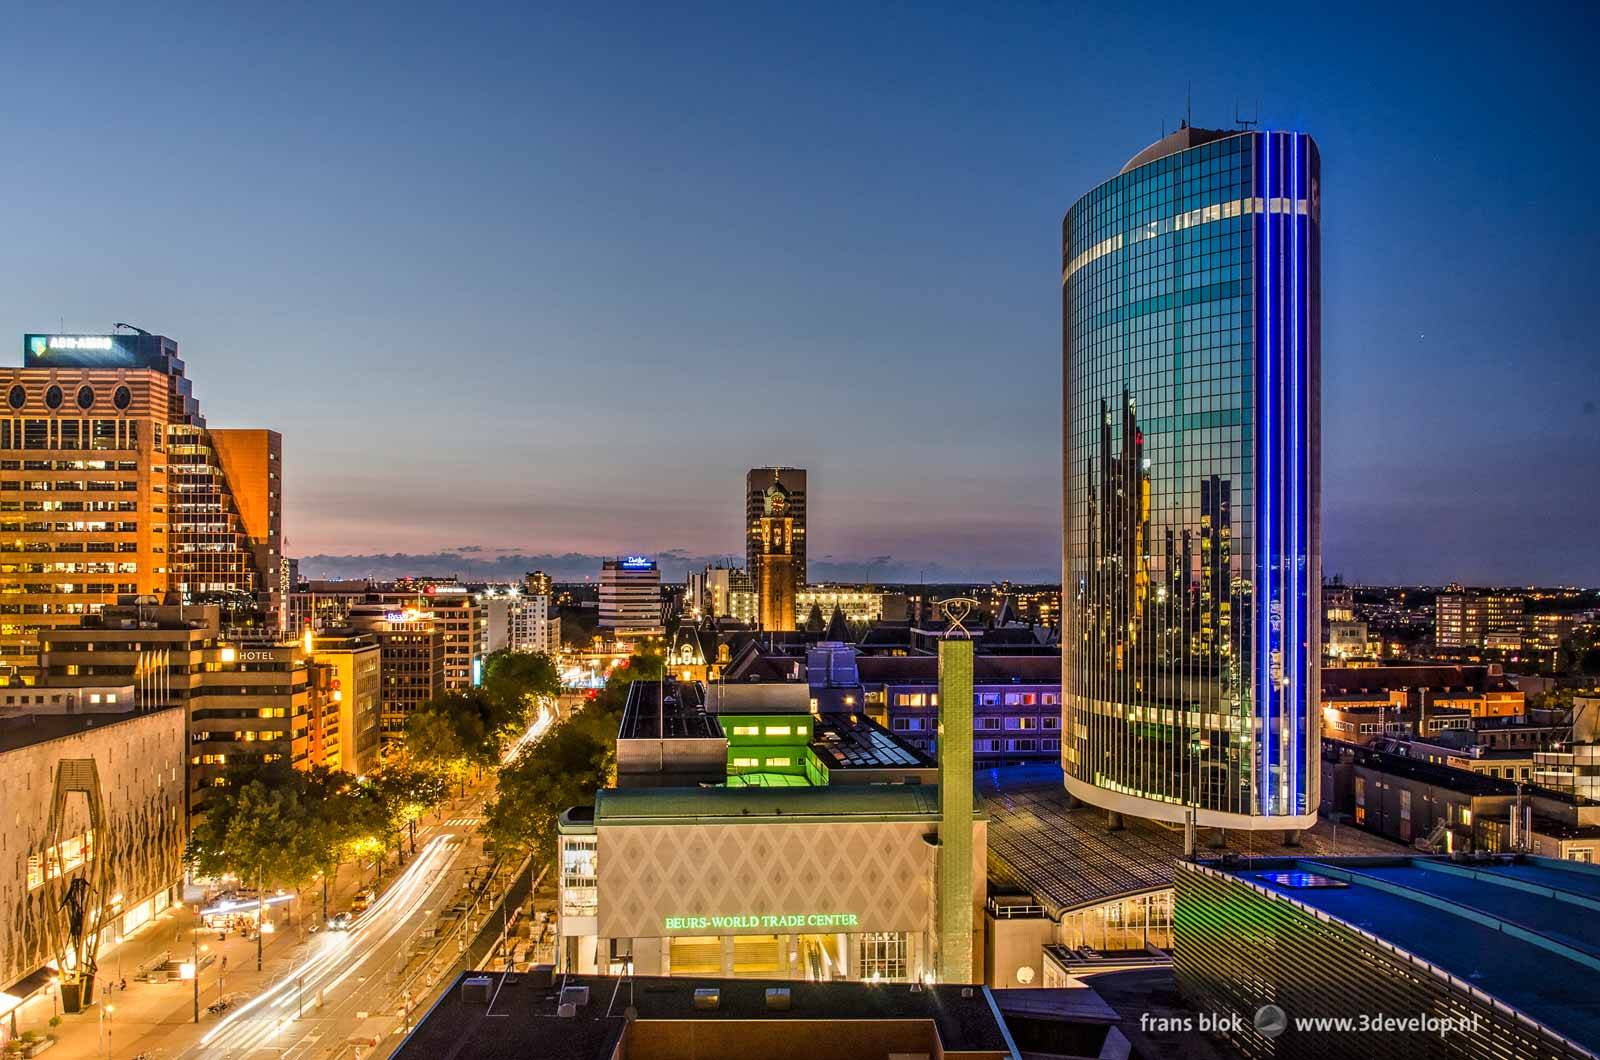 Coolsingel and Beurs World Trade Center in Rotterdam at nightfall seen from the roof of Erasmushuis